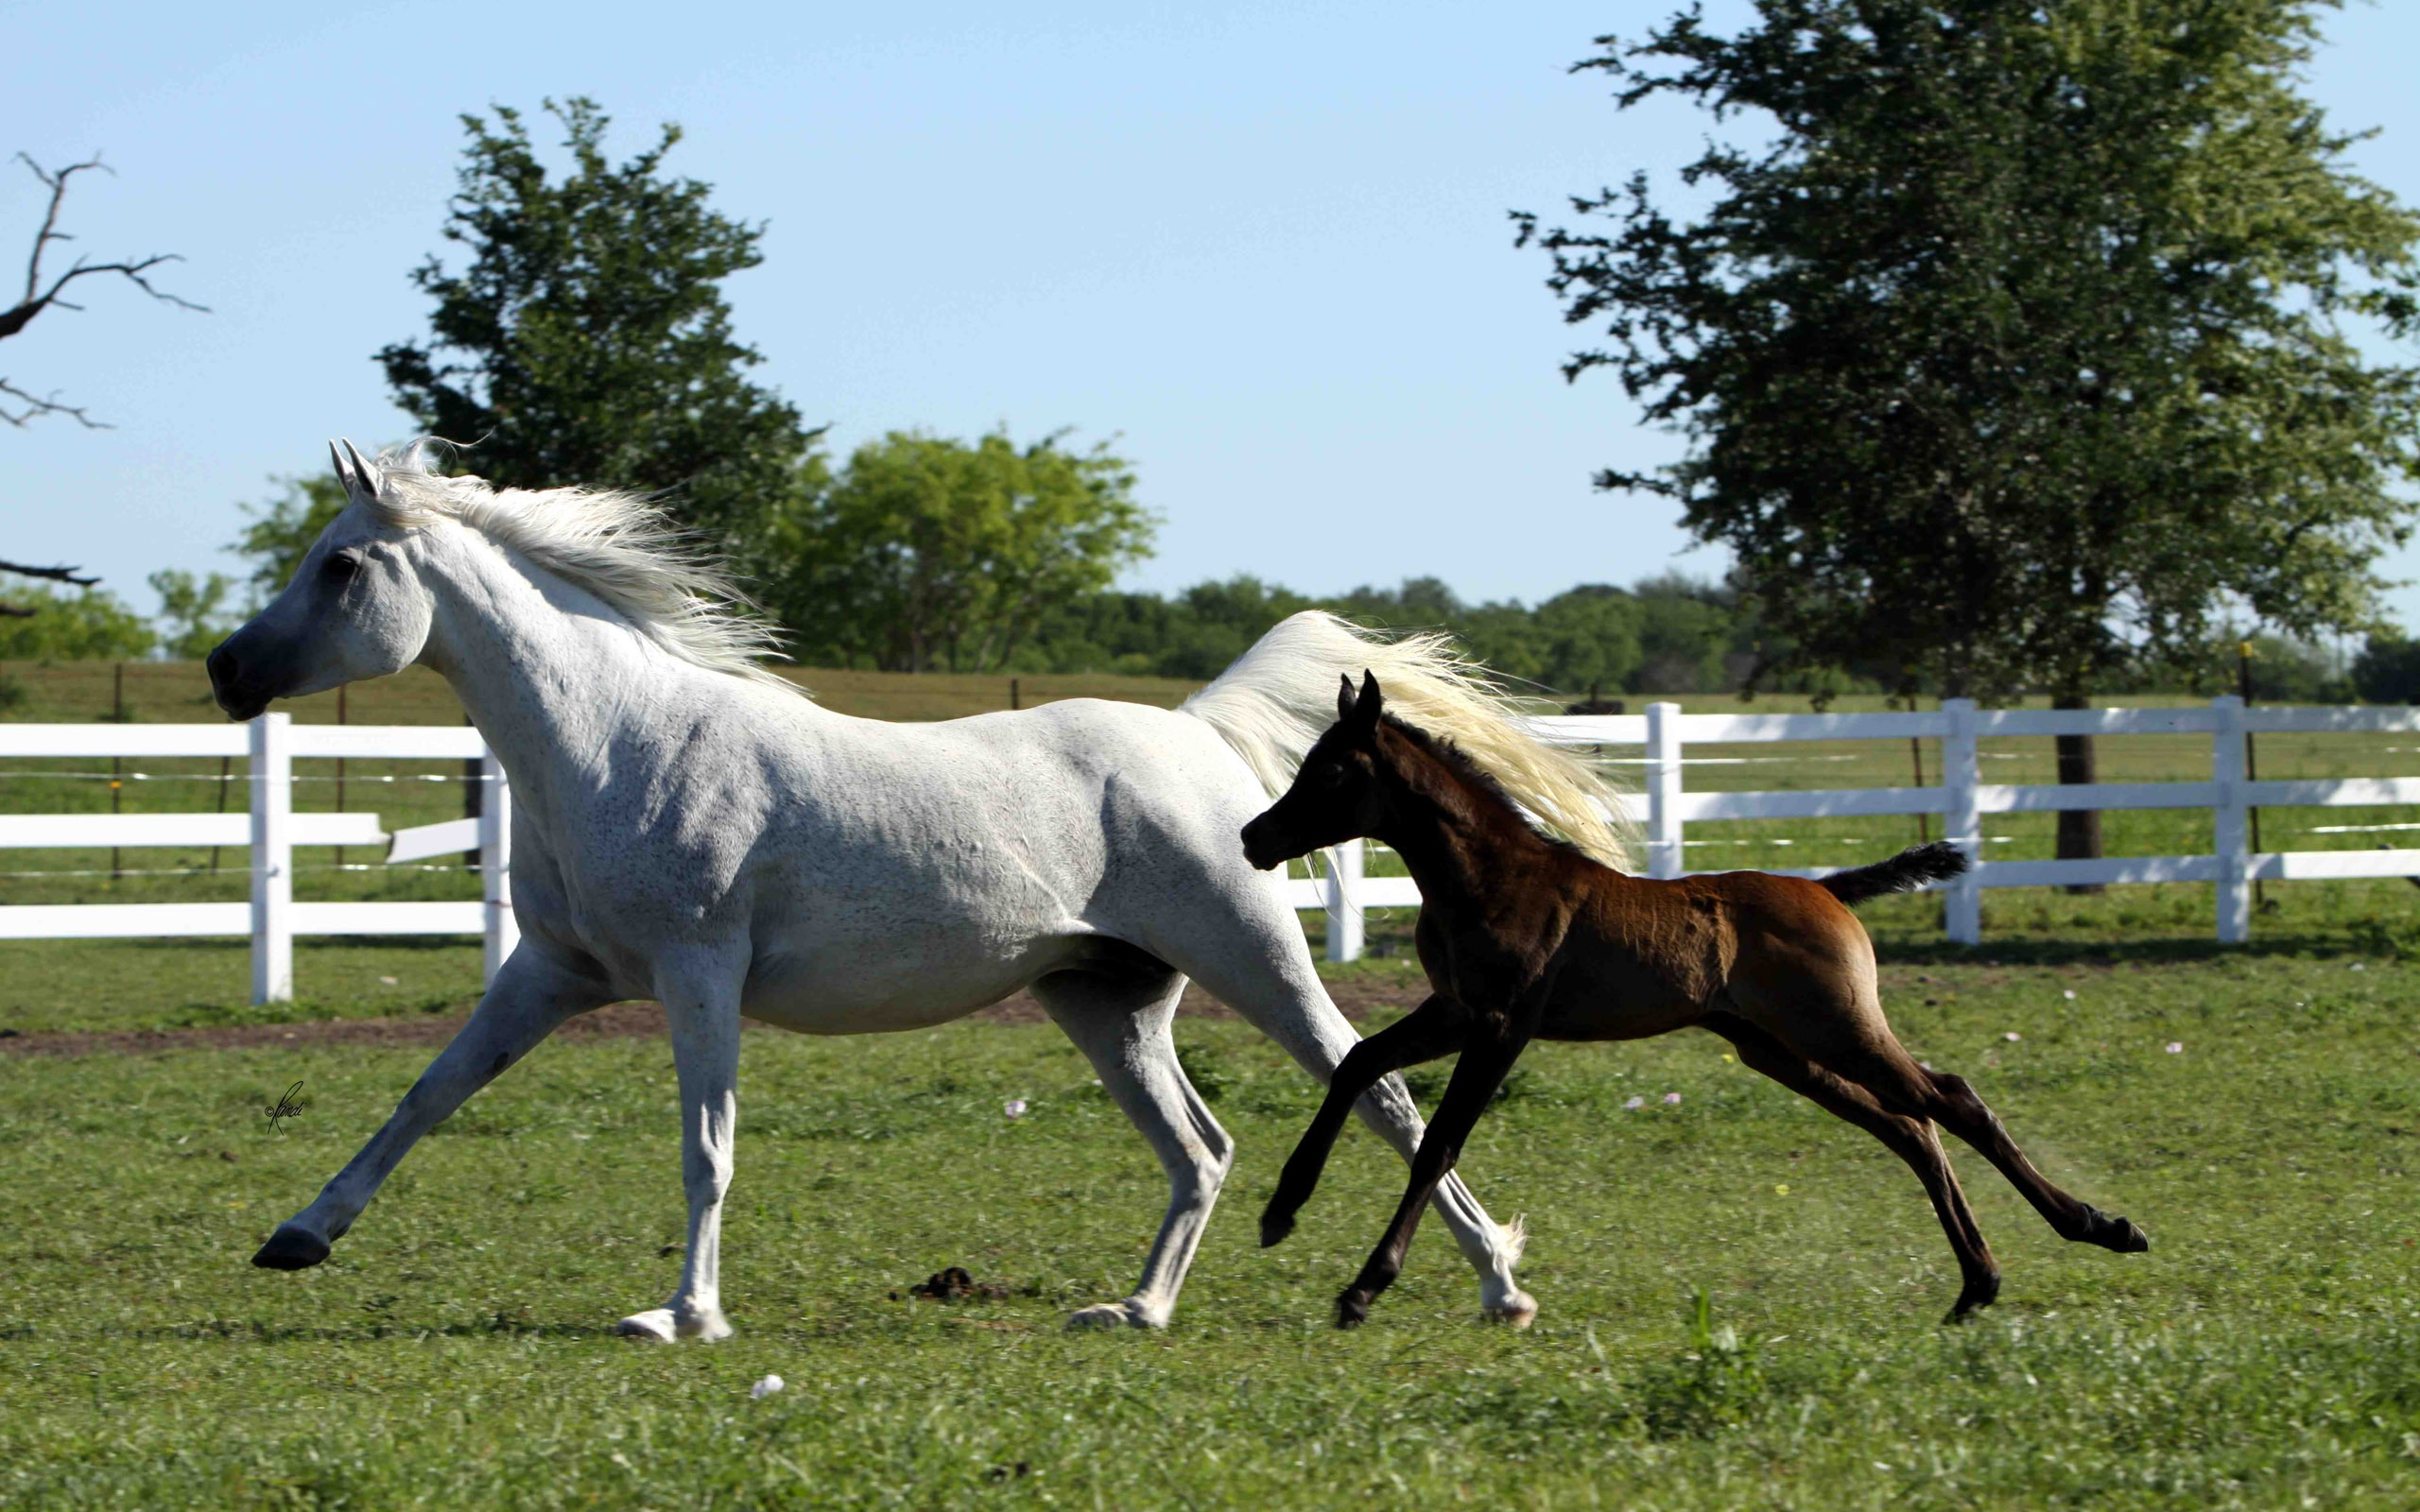 Cute Baby Horse Wallpaper White Horse Running With Brown Foal